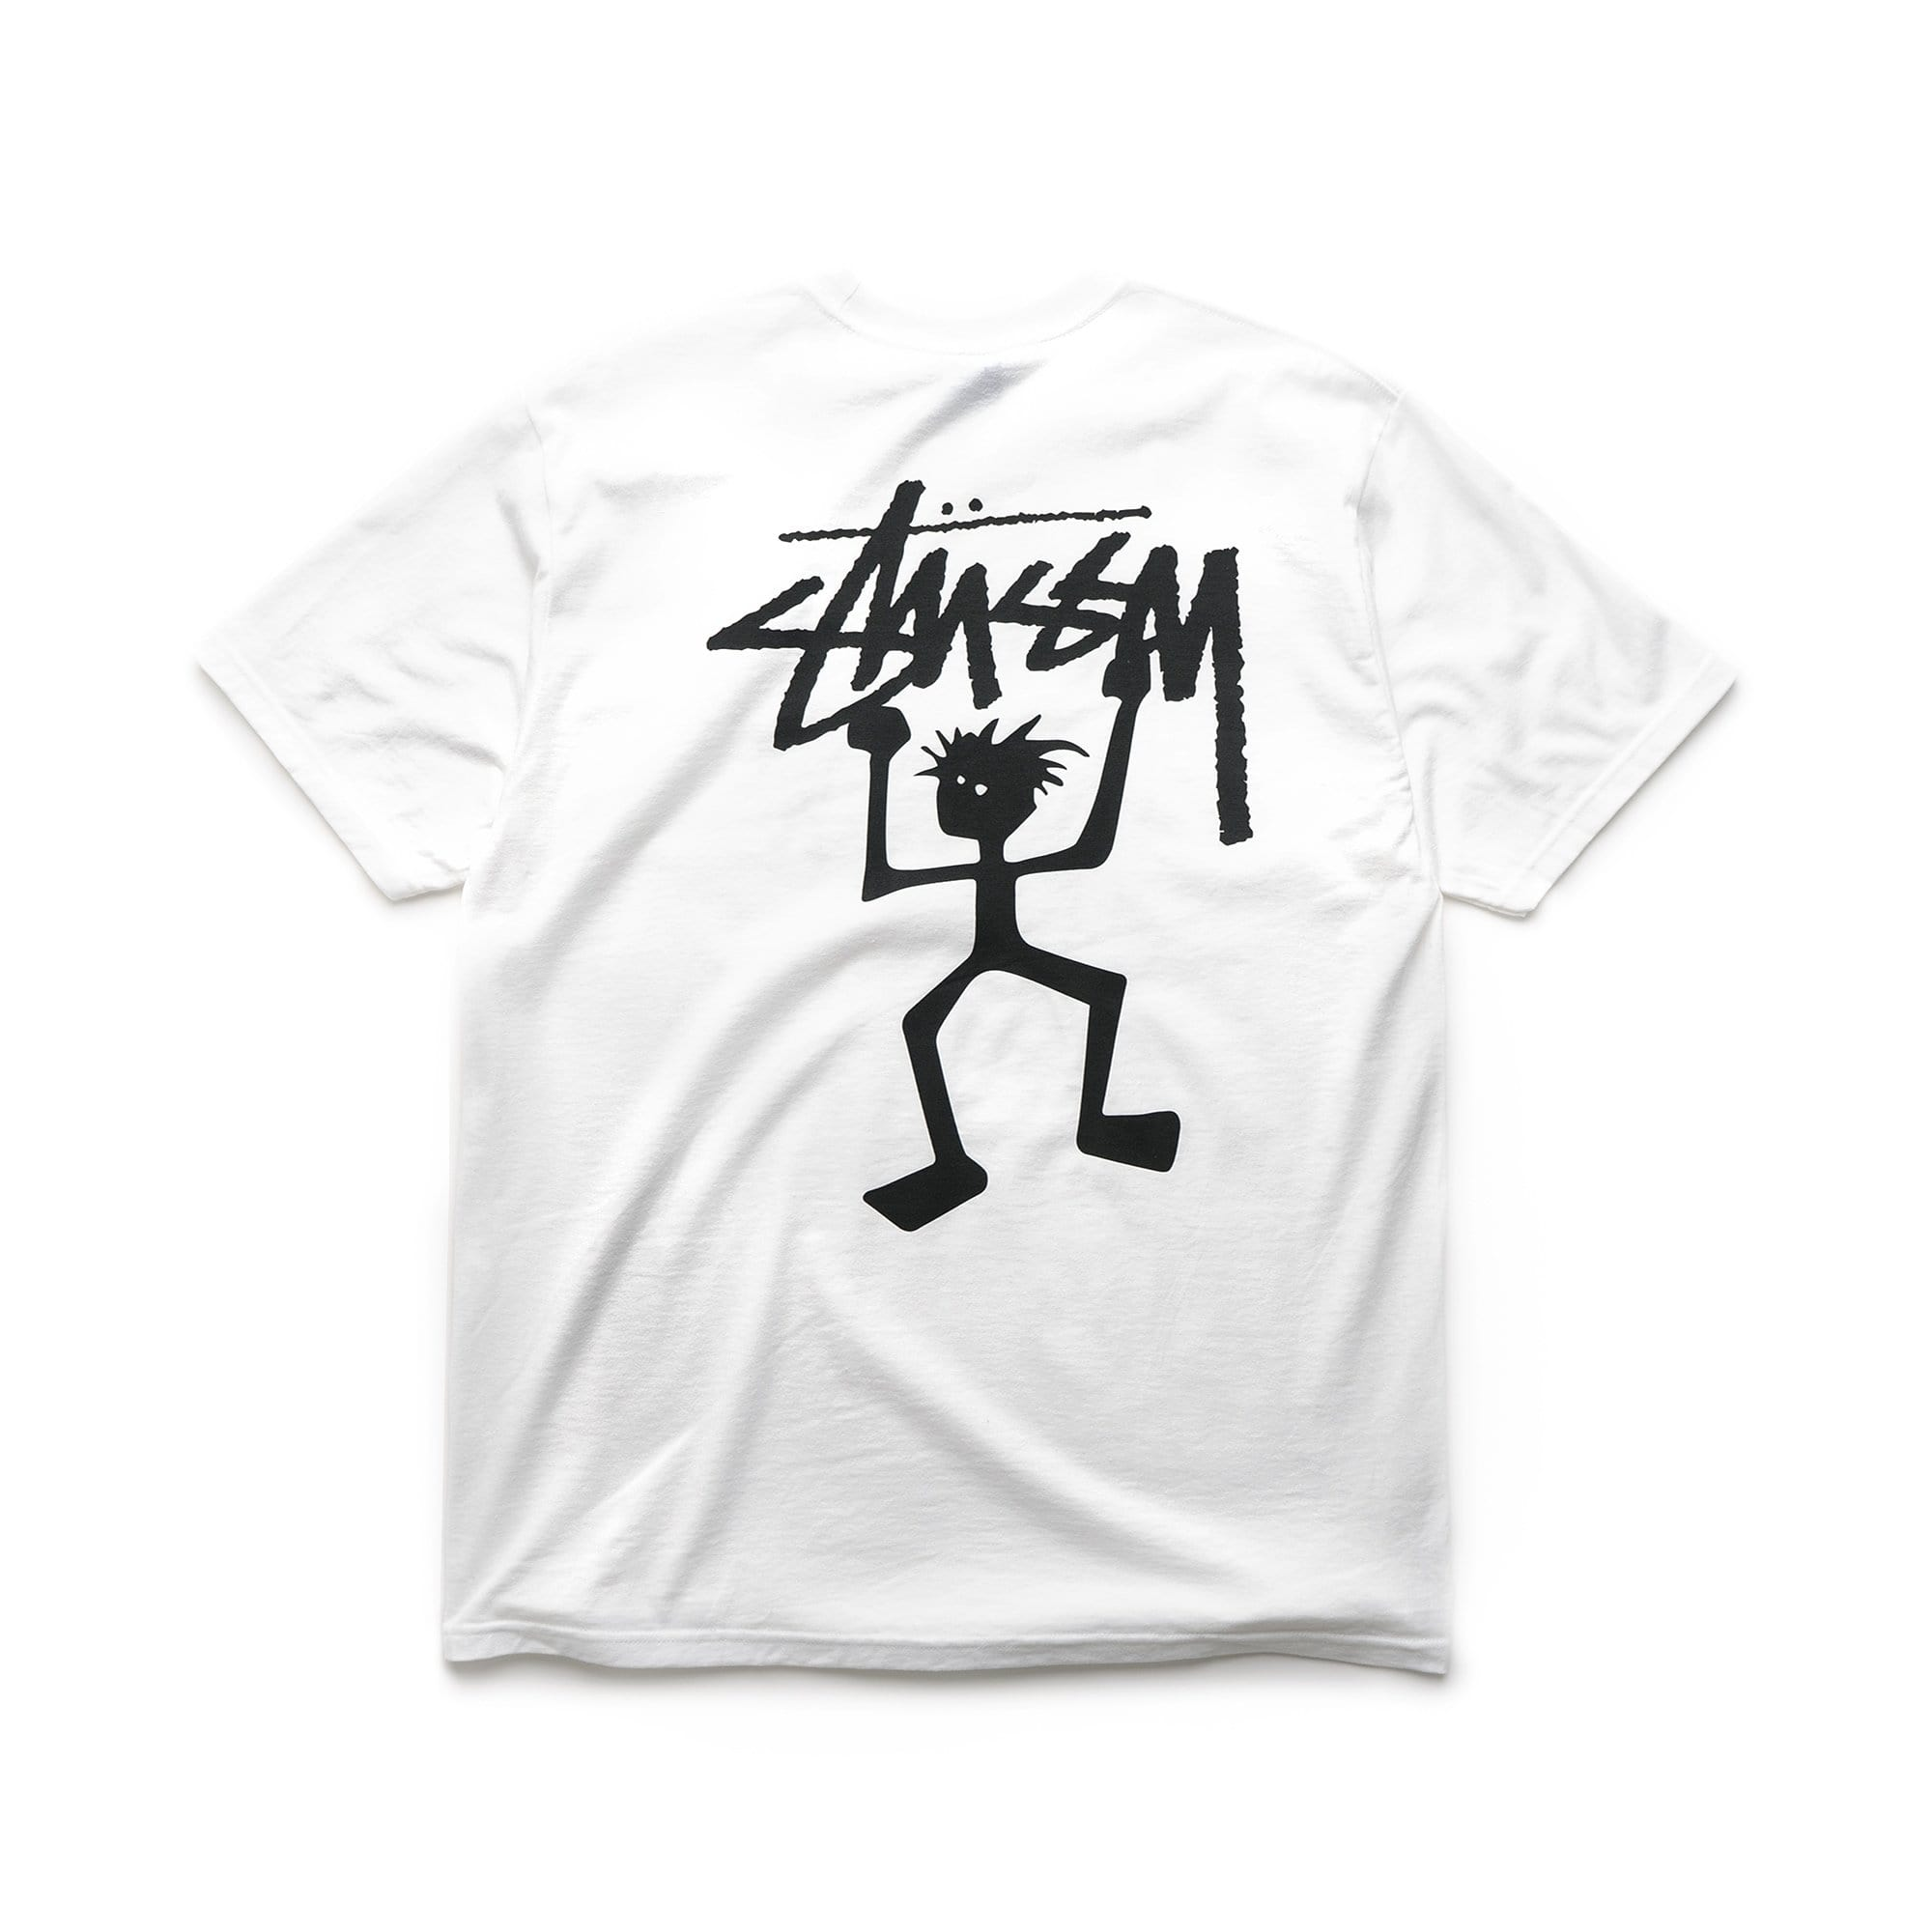 Stüssy T-Shirts Warrior Man Tee